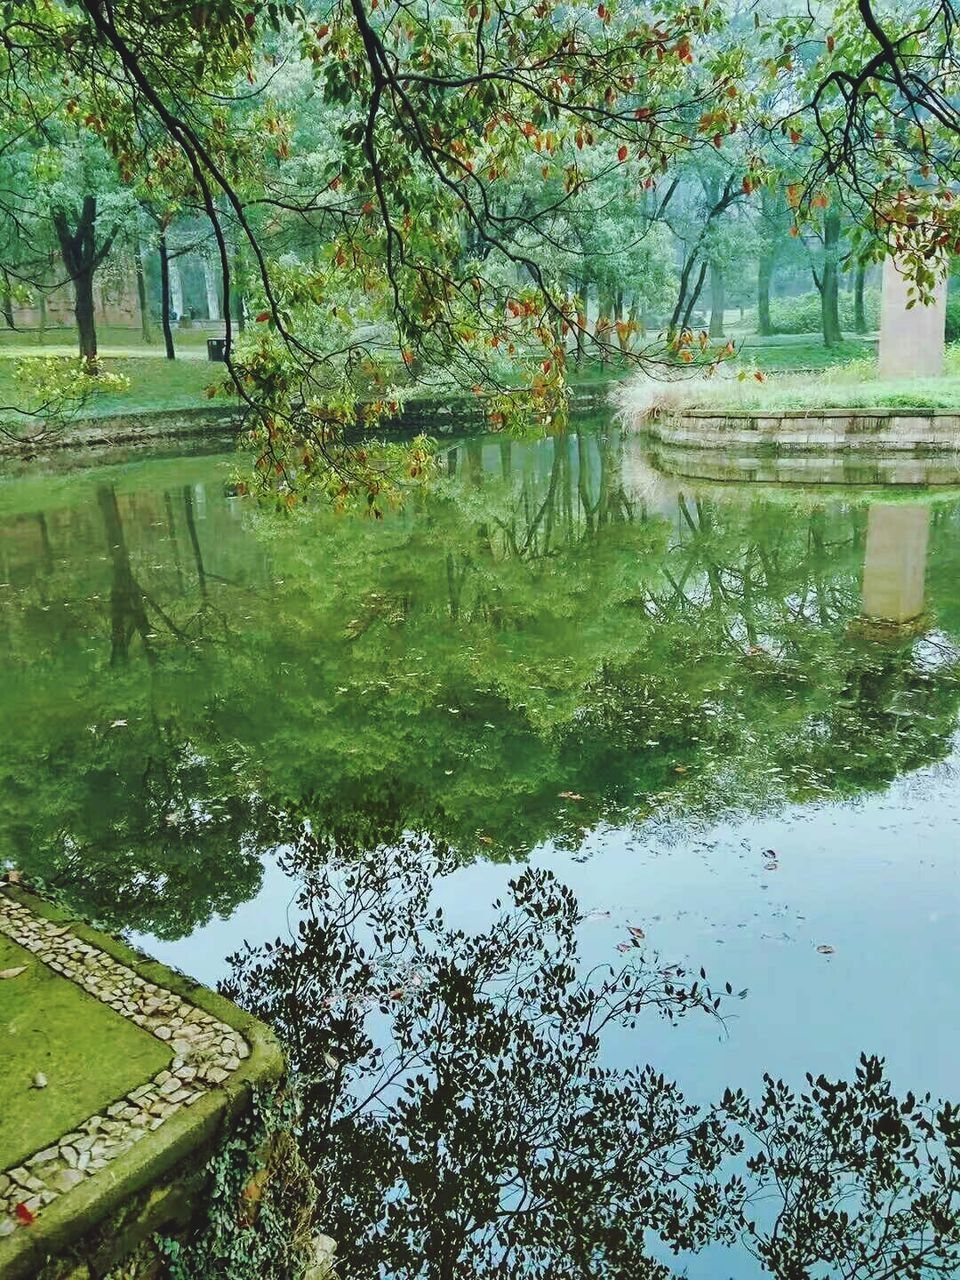 reflection, water, tree, lake, nature, beauty in nature, standing water, day, tranquility, outdoors, growth, no people, tranquil scene, branch, waterfront, scenics, green color, flower, puddle, grass